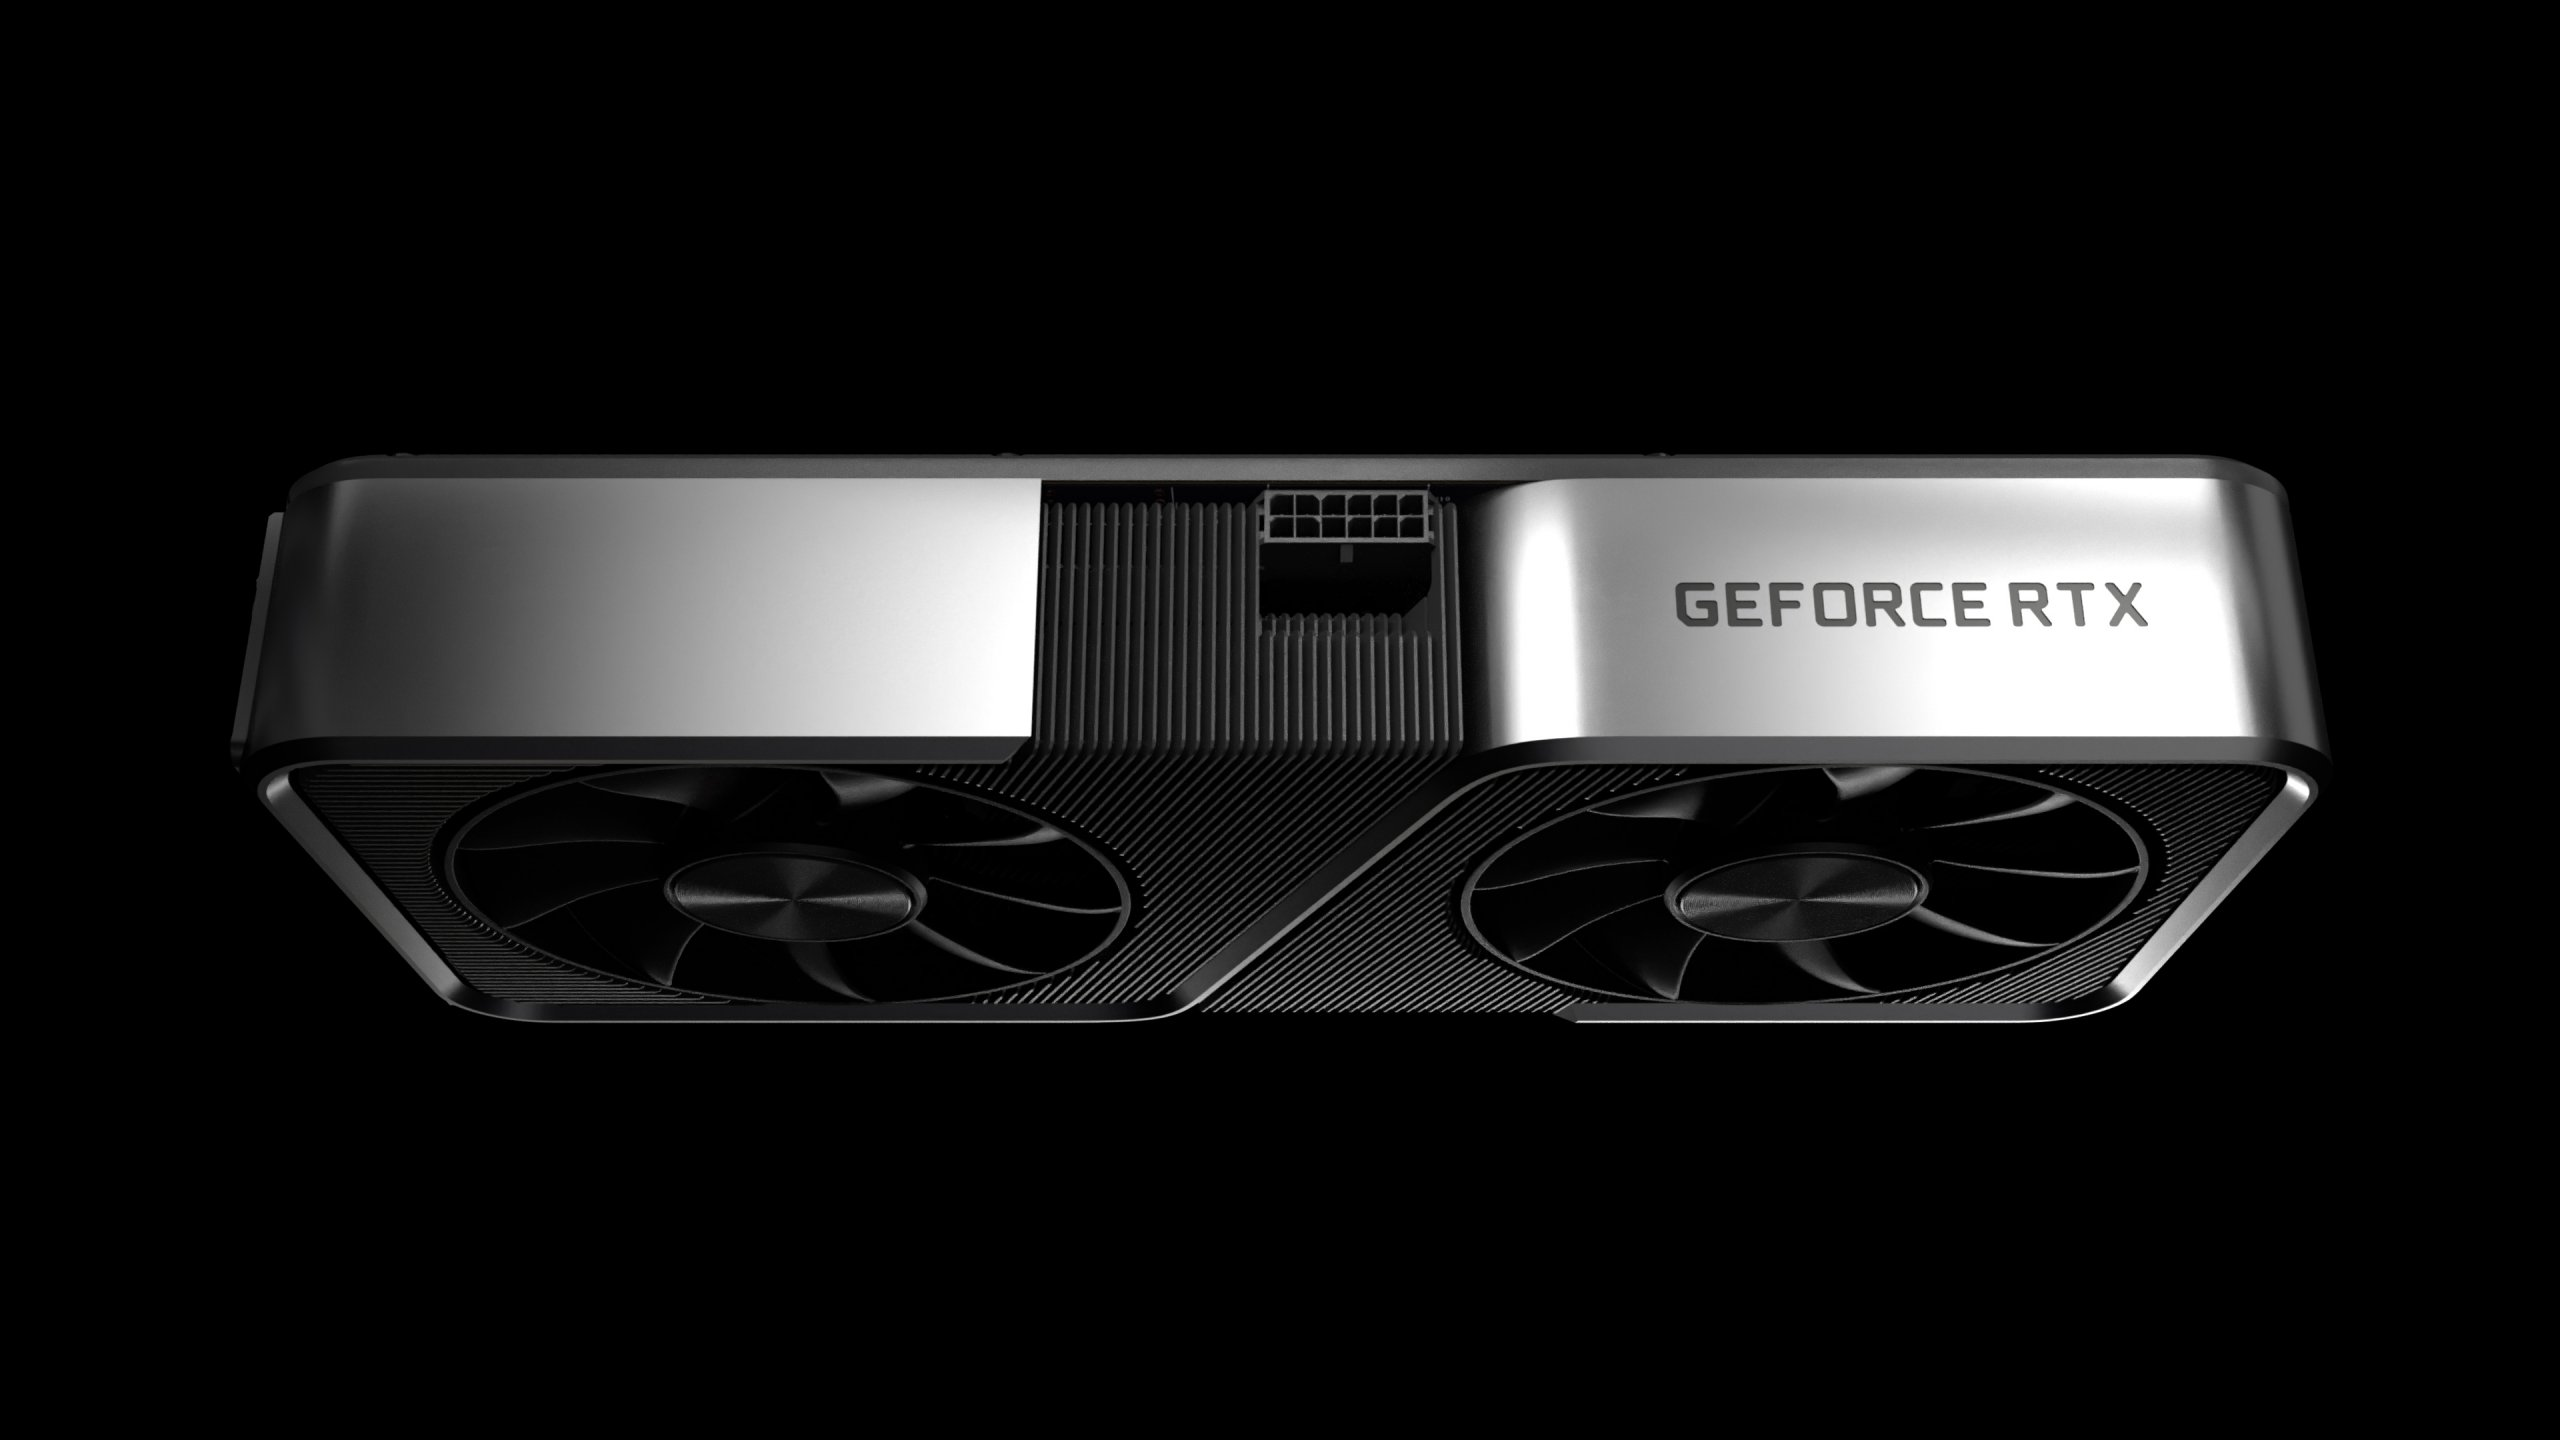 NVIDIA GeForce RTX 30 Series graphics cards: Announcement details